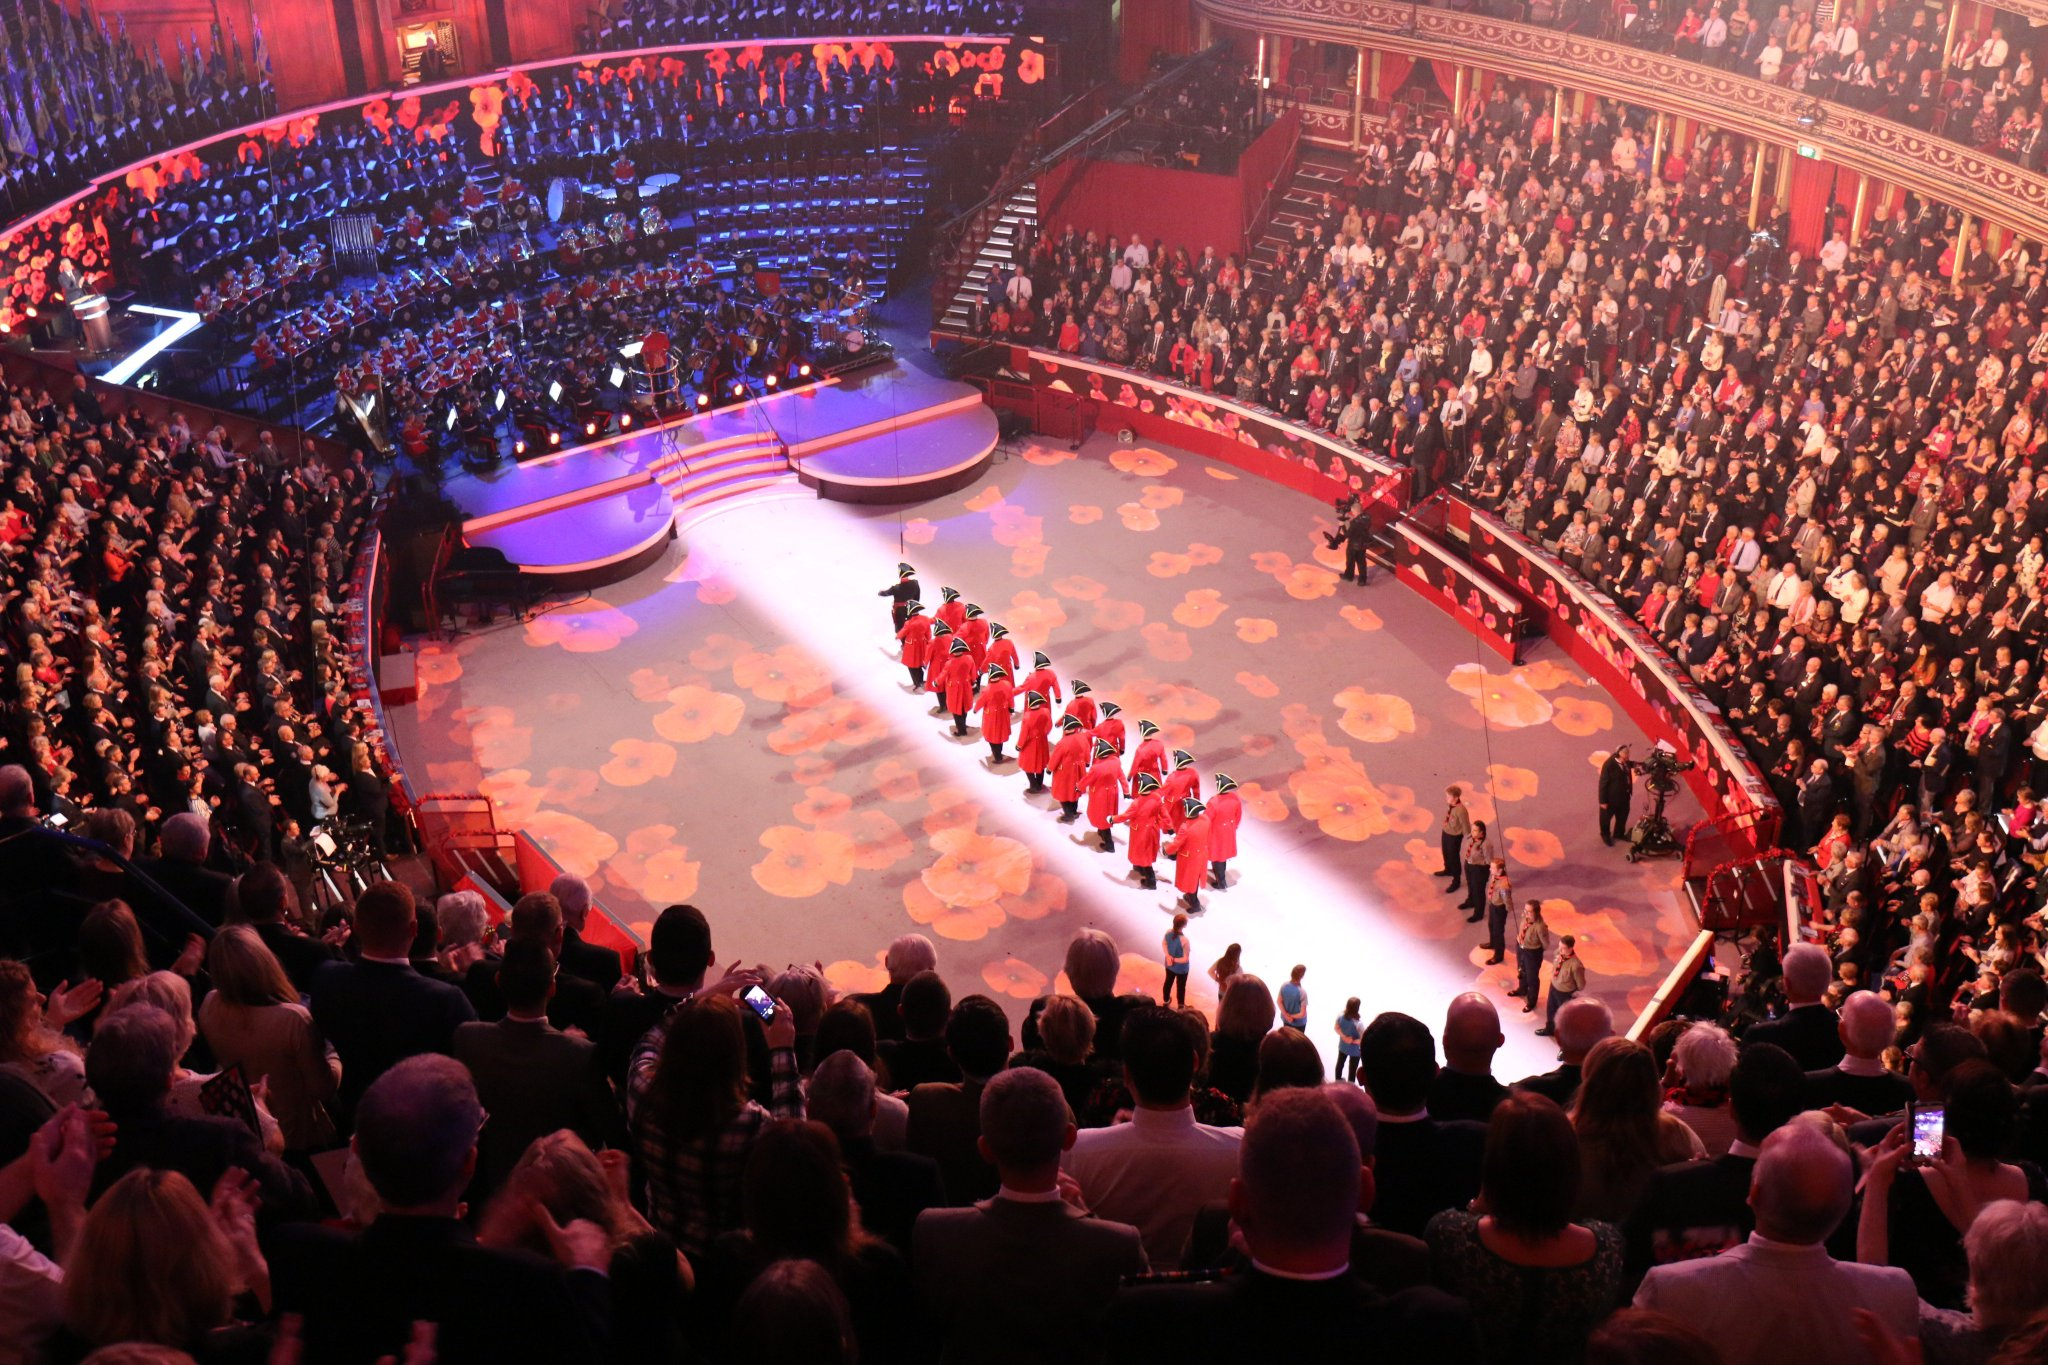 The Chelsea Pensioners make their entrance at the #FestivalofRemembrance @RHChelsea and are given a guard of honour by @UKScouting and @Girlguiding who played a vital role in #WW1 #FestivalofRemembrance https://t.co/EZI1GgAEp9